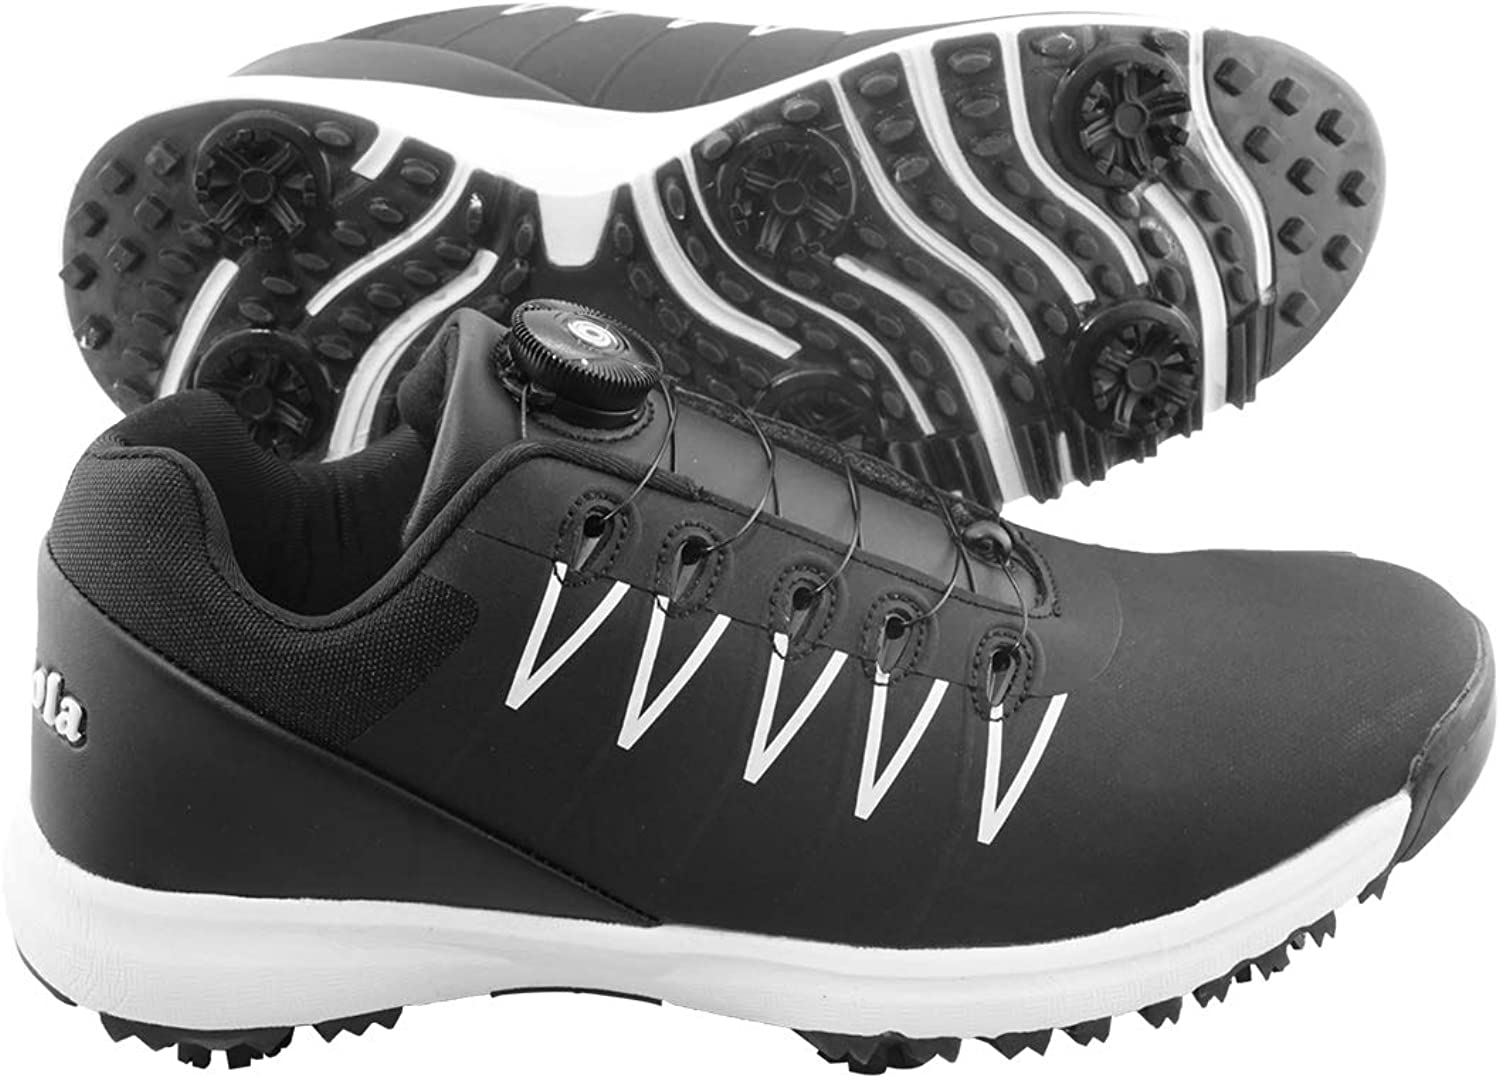 Special Campaign N\A Men High material Golf Shoes Women Waterproof Professional Sp Buttons Spin